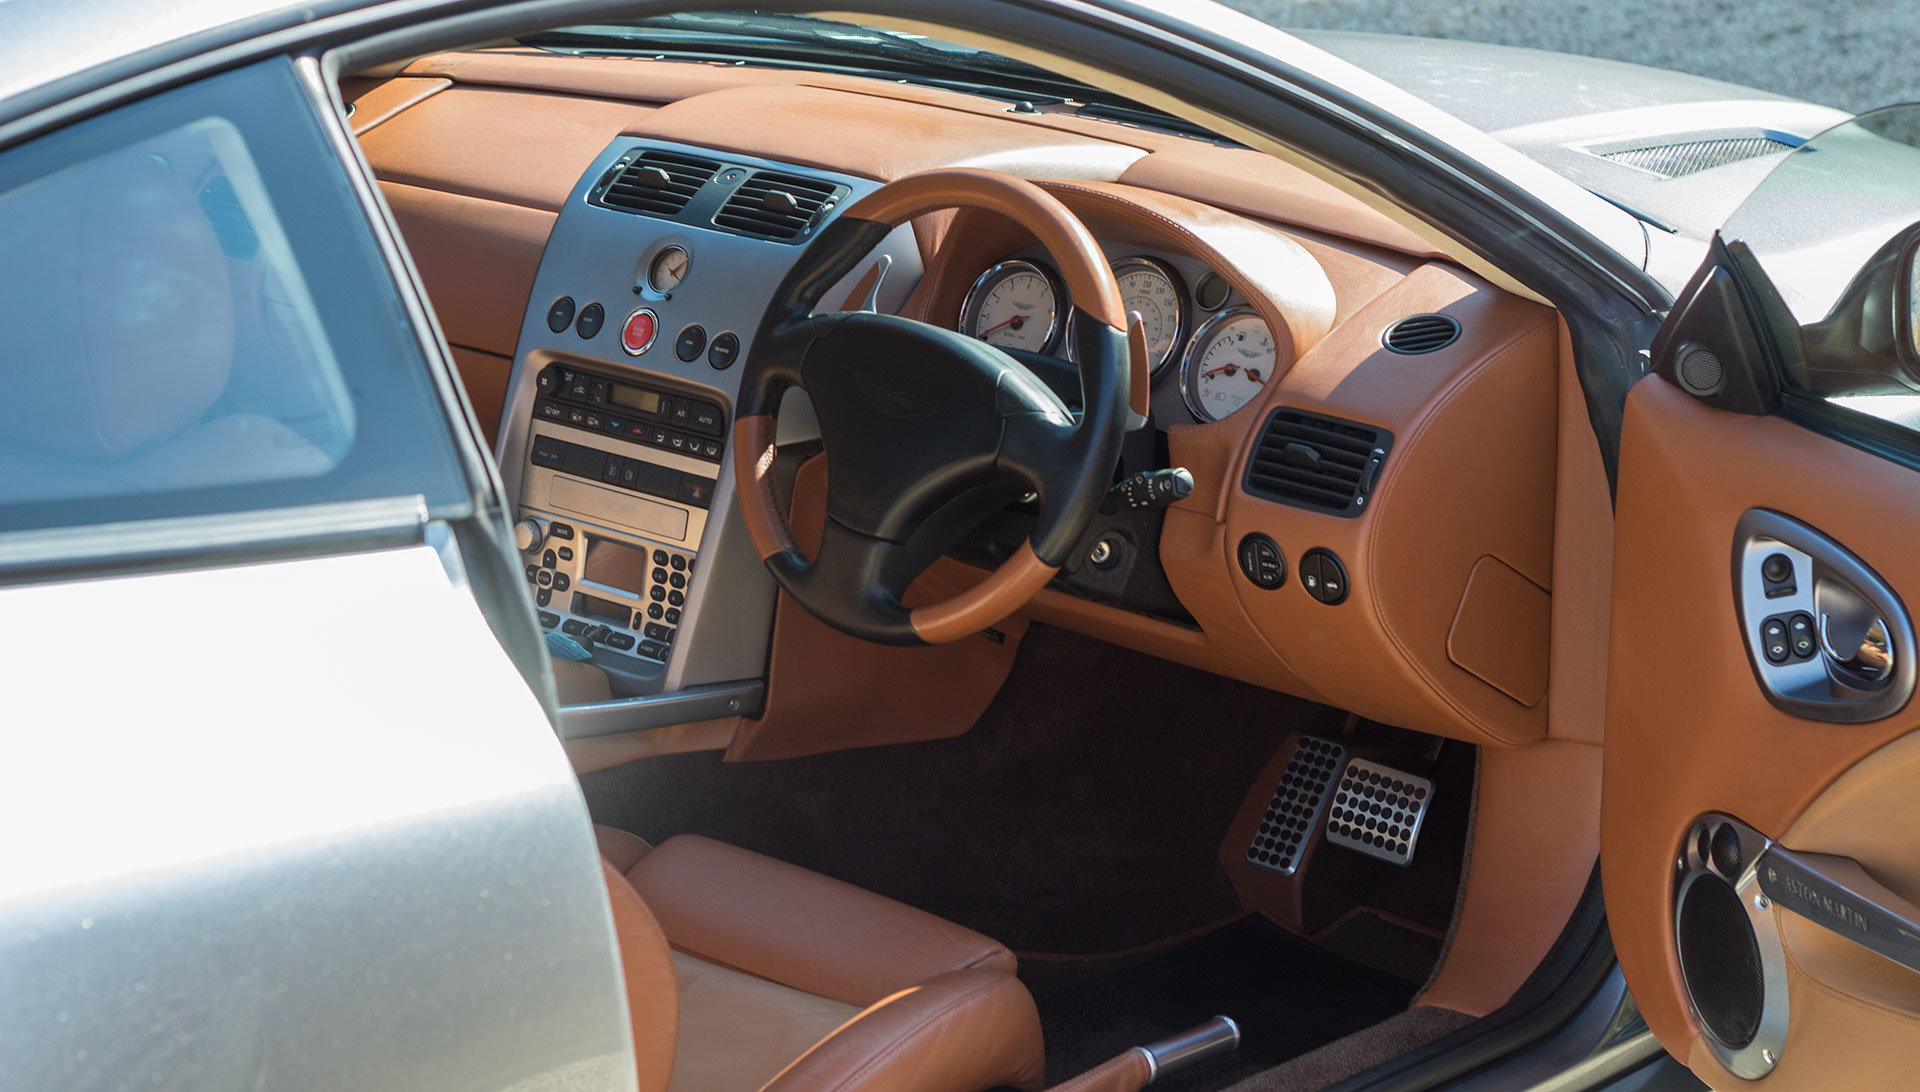 2003 Aston Martin V12 Vanquish - 22,000 miles For Sale (picture 4 of 6)